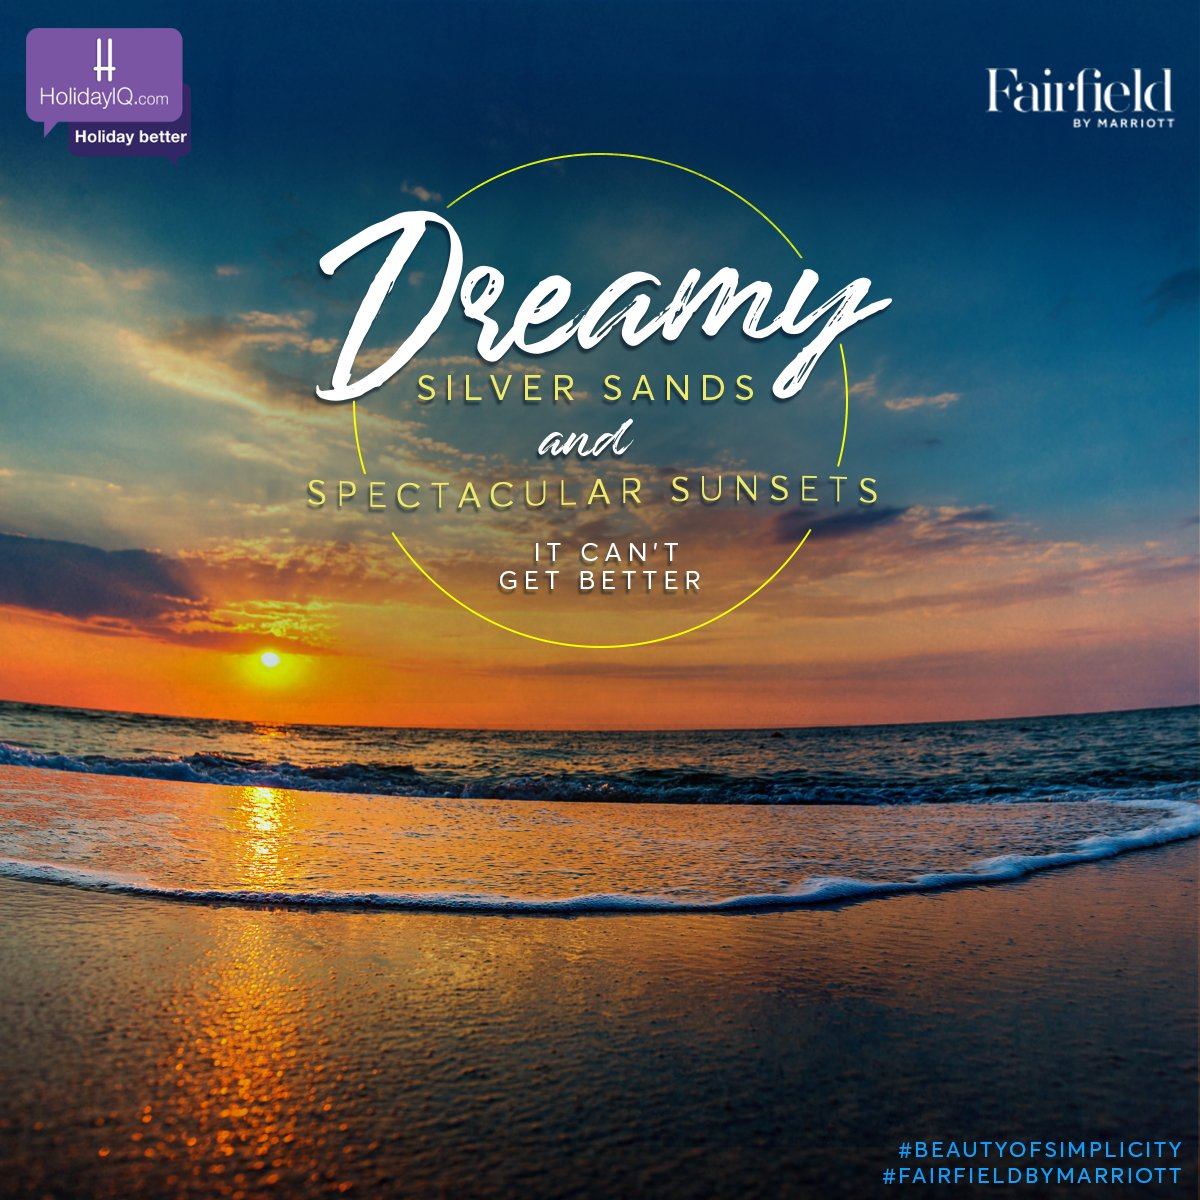 Unwind on silver sands and soak up some sun at the Silver Sands Beach, Anjuna, Goa. Watch this space to know more. #BeautyOfSimplicity #FairfieldByMarriott #holidayiq #holidayiqcommunity  @fairfieldanjuna https://t.co/H2RA876IdT